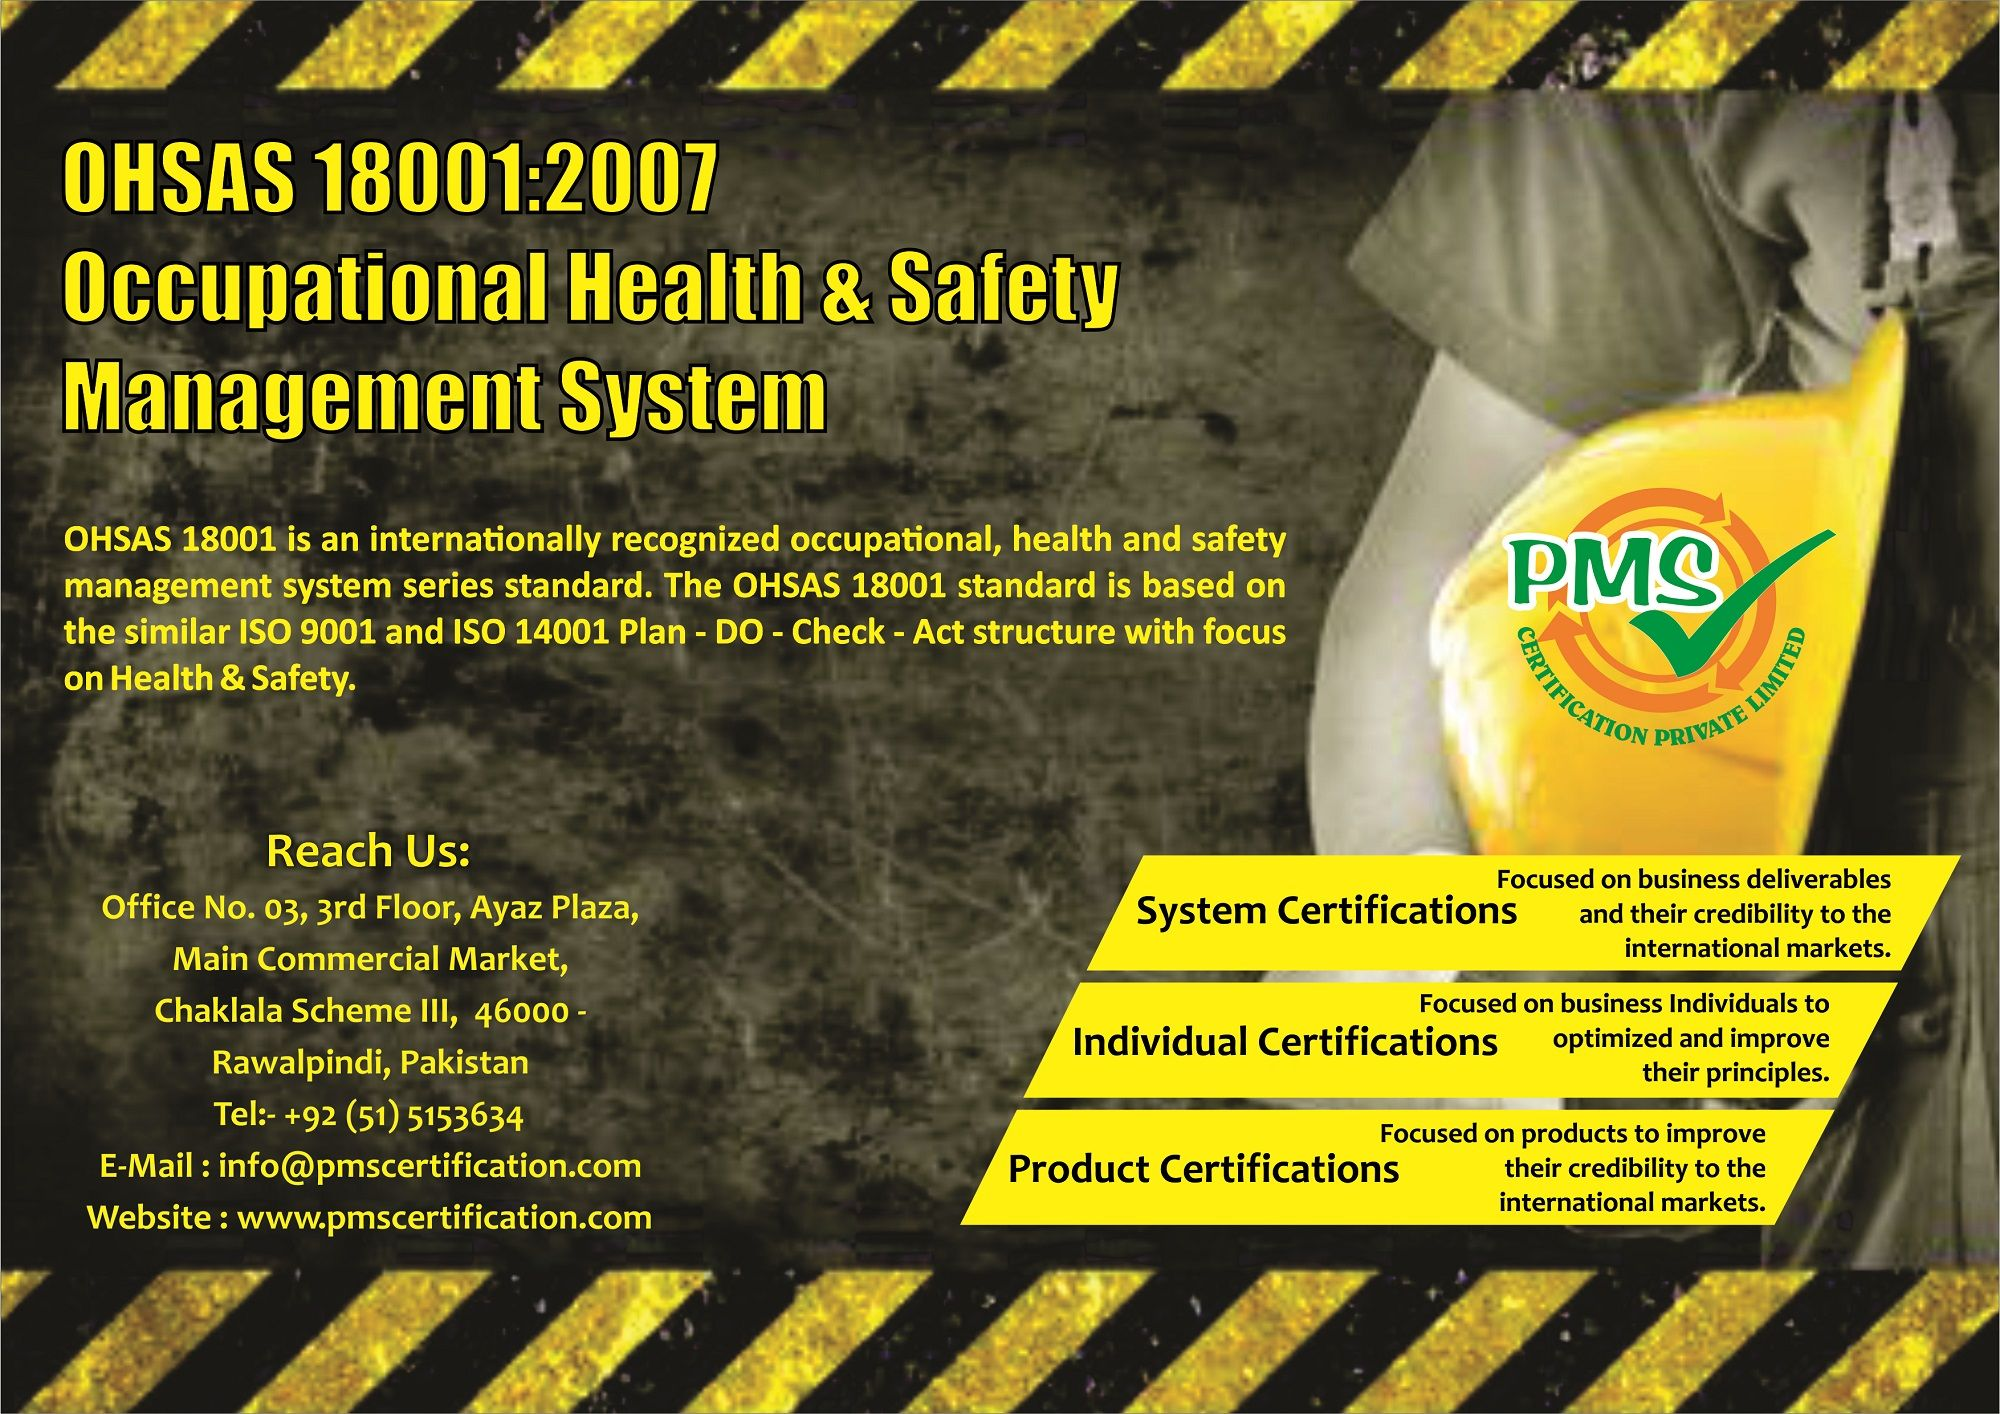 OHSAS 18001 is an internationally recognized occupational